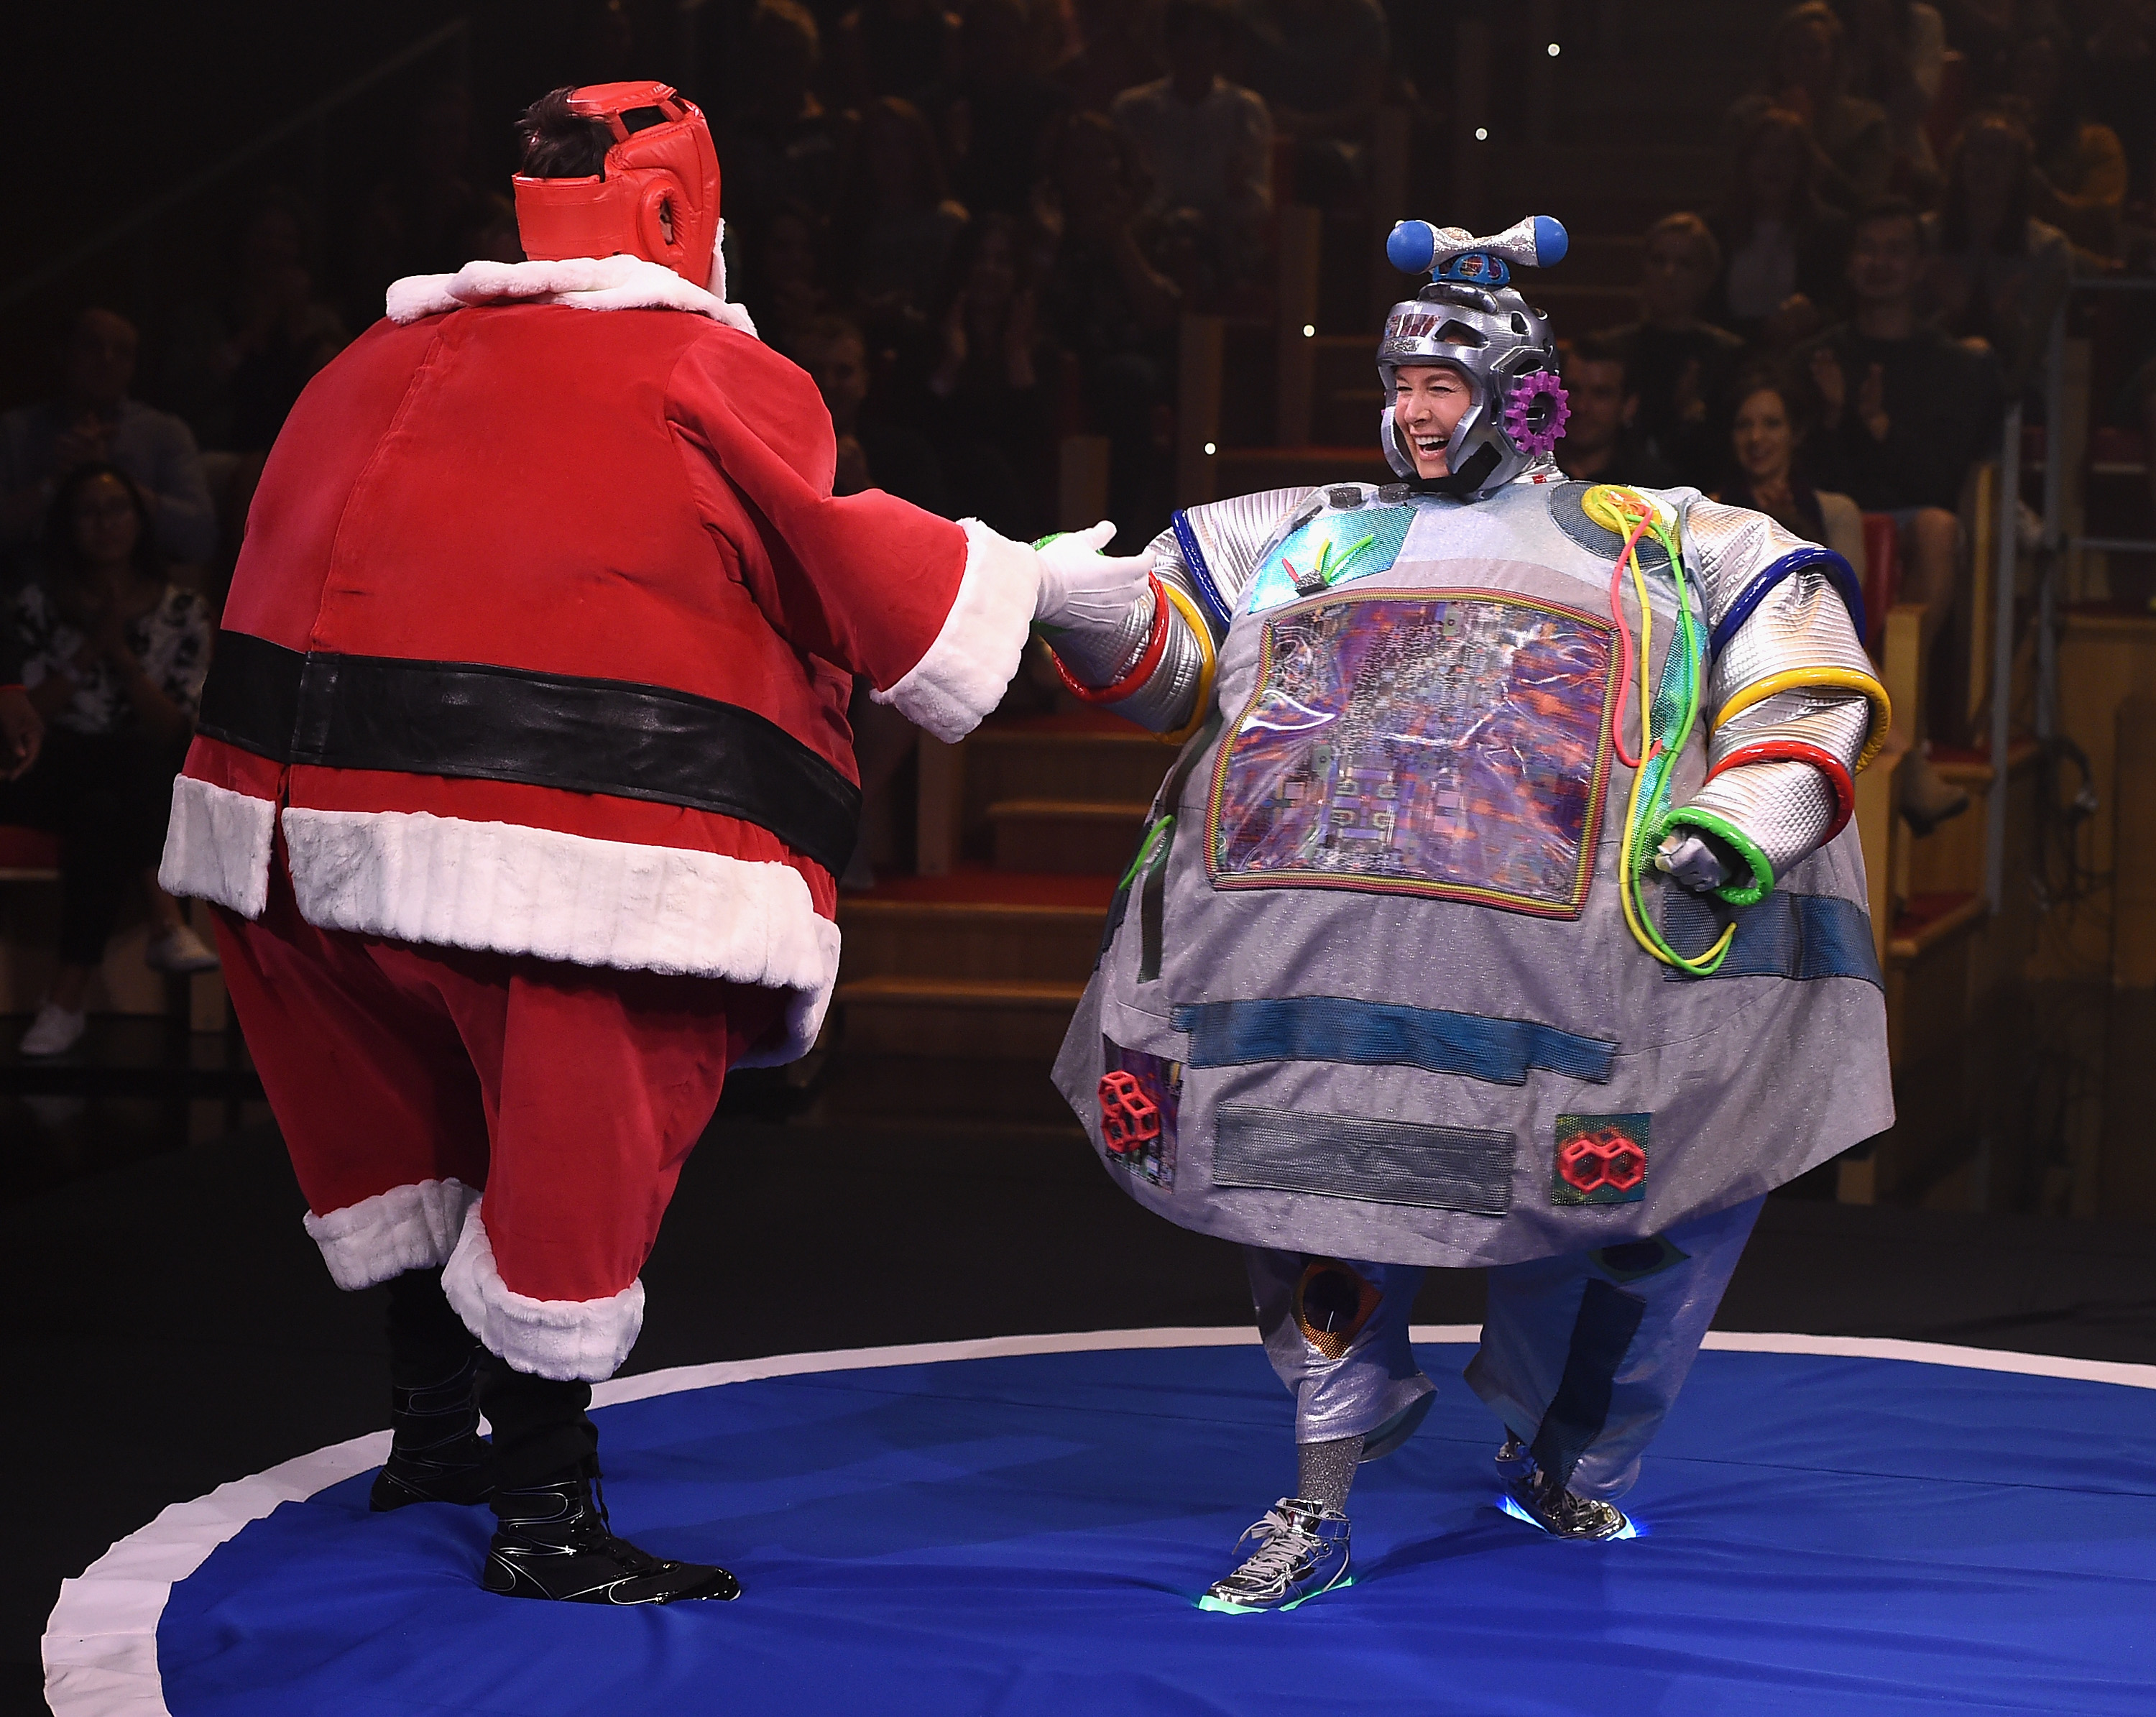 Renée Zellweger and Jimmy Fallon costume wrestled, and it's the best thing we've ever freaking seen